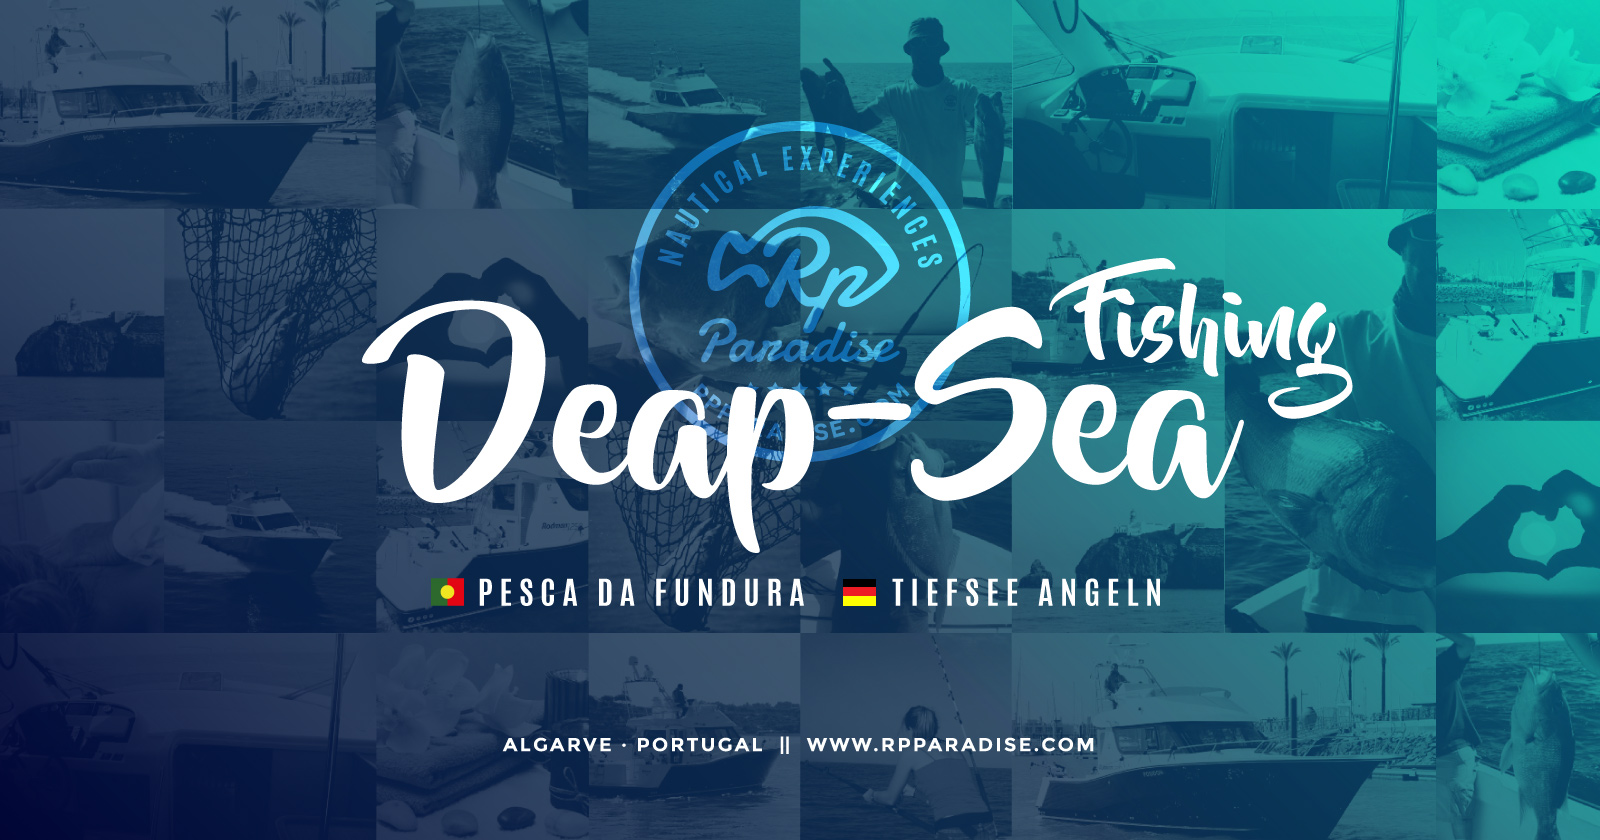 Deep Sea Fishing Portimao Algarve